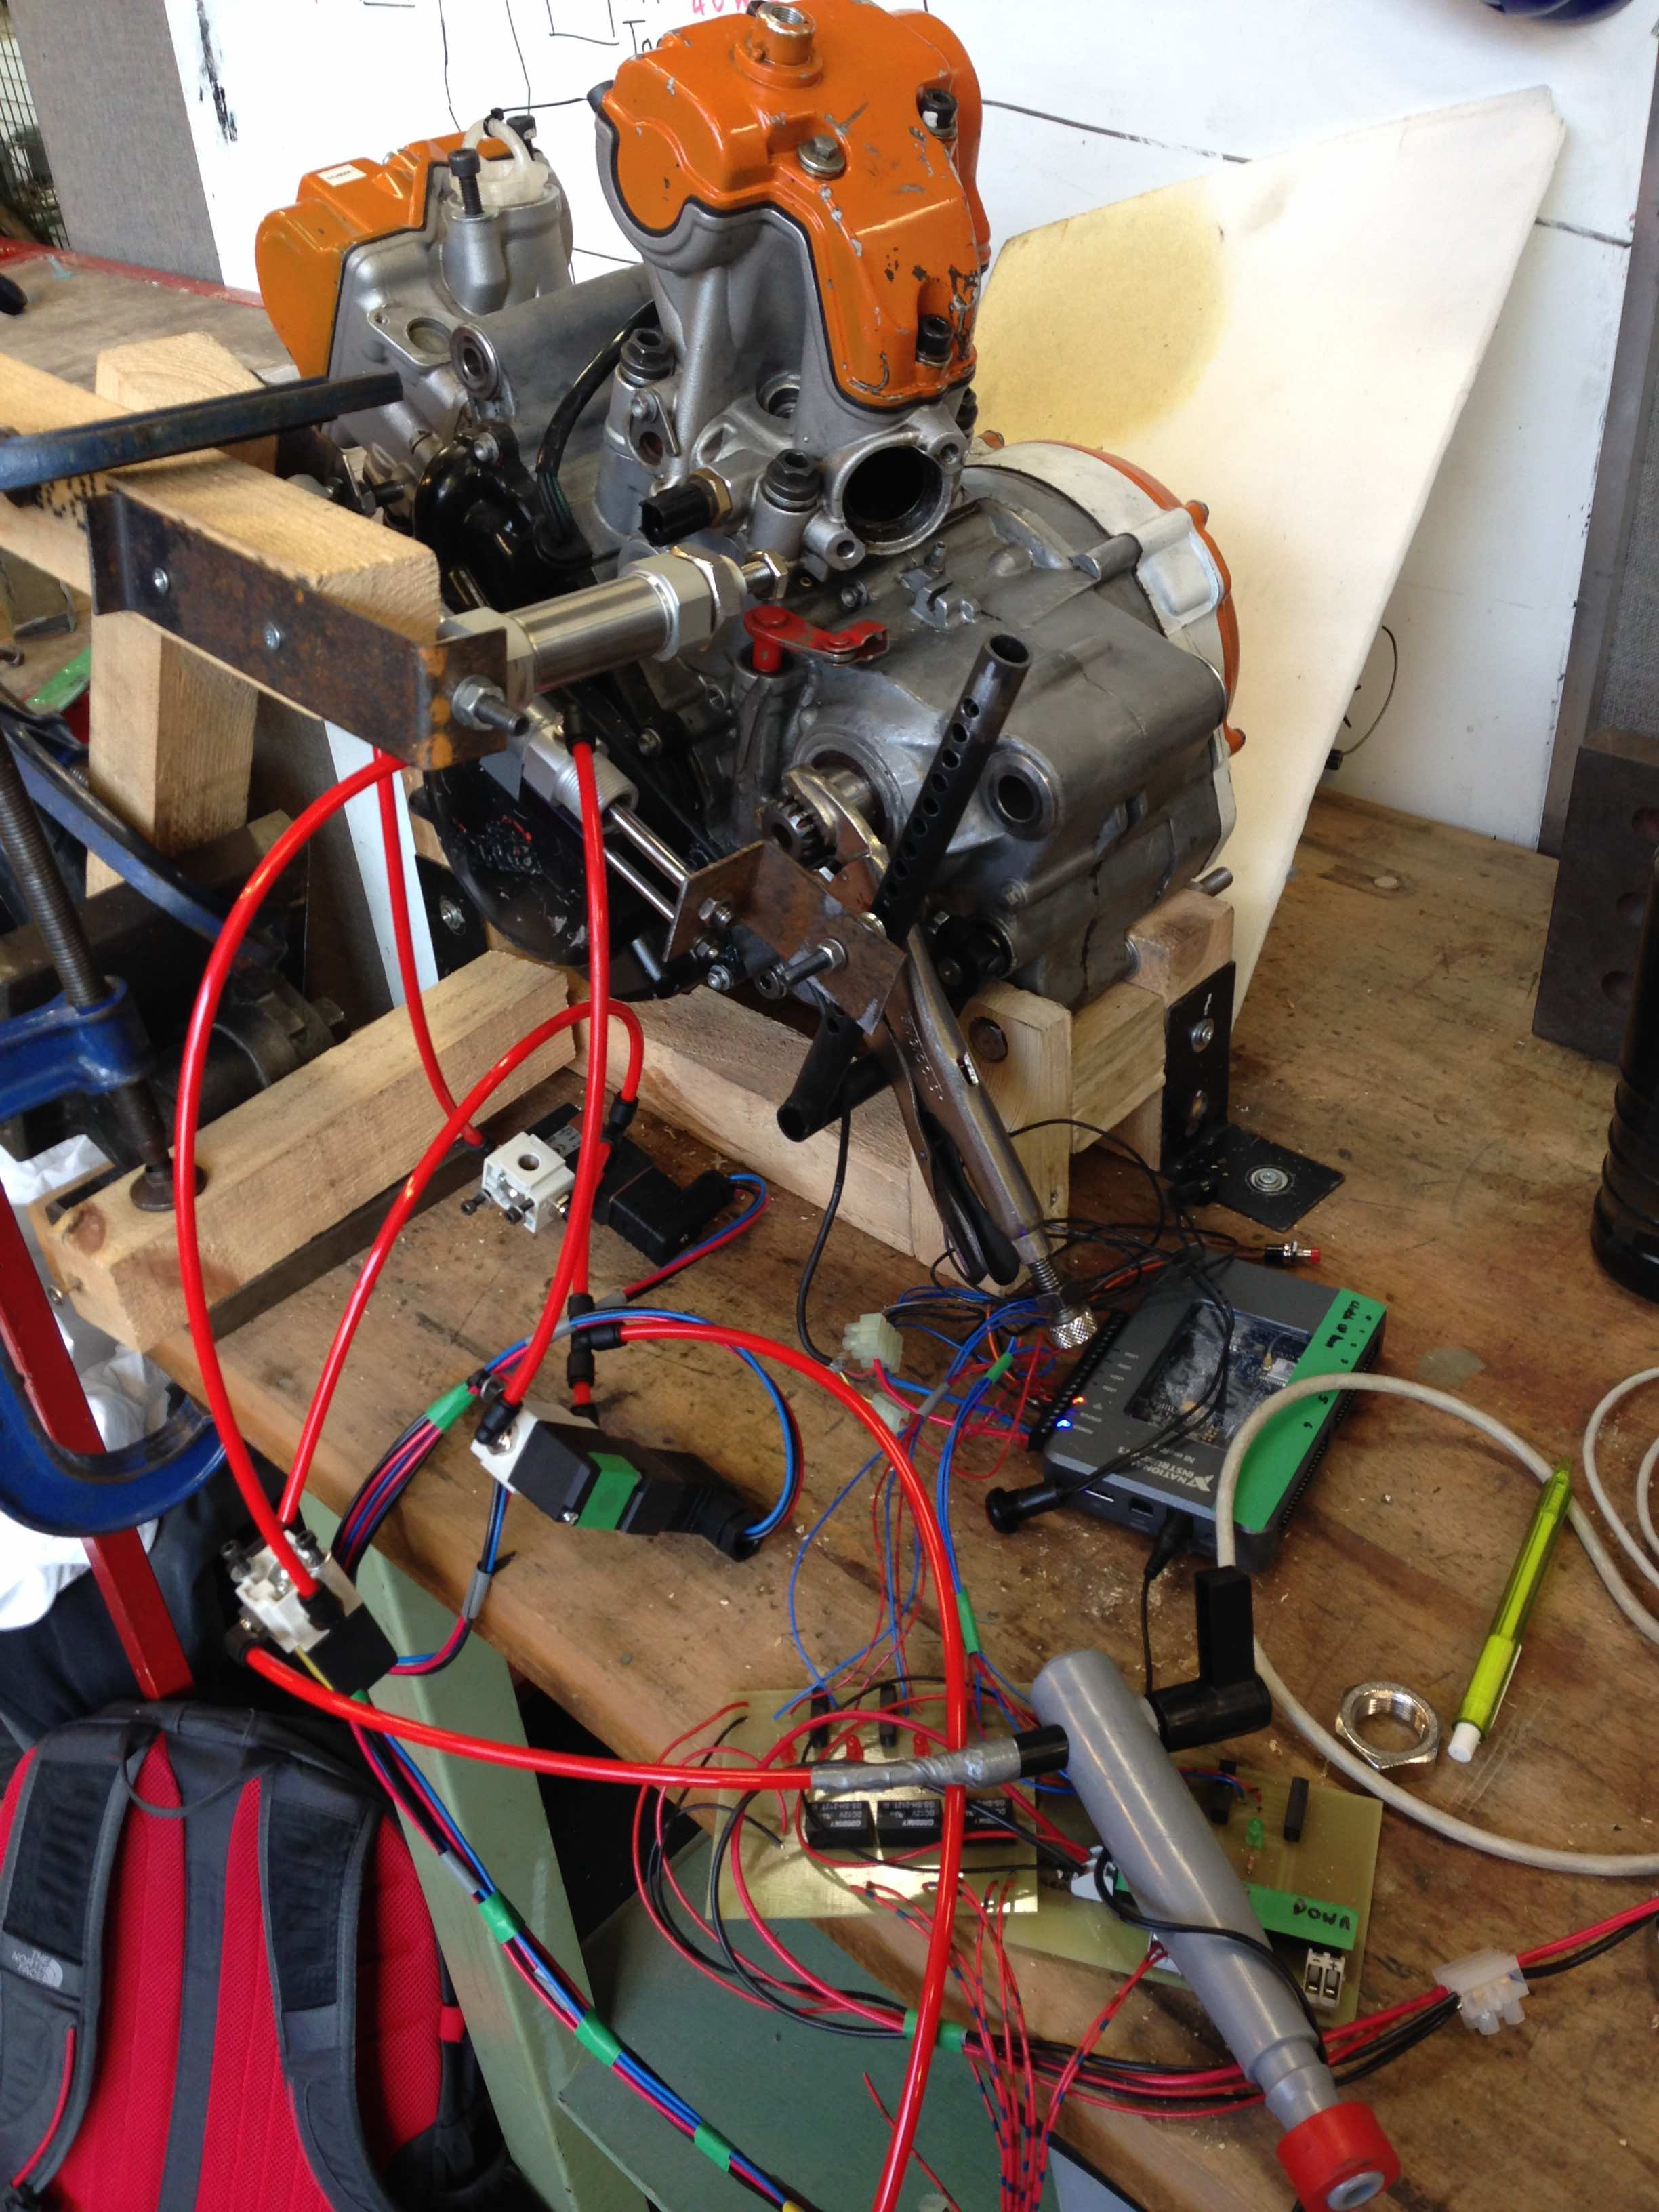 Pneumatic shifting system for a bustion Formula Student car using LabVIEW and myRIO  NI